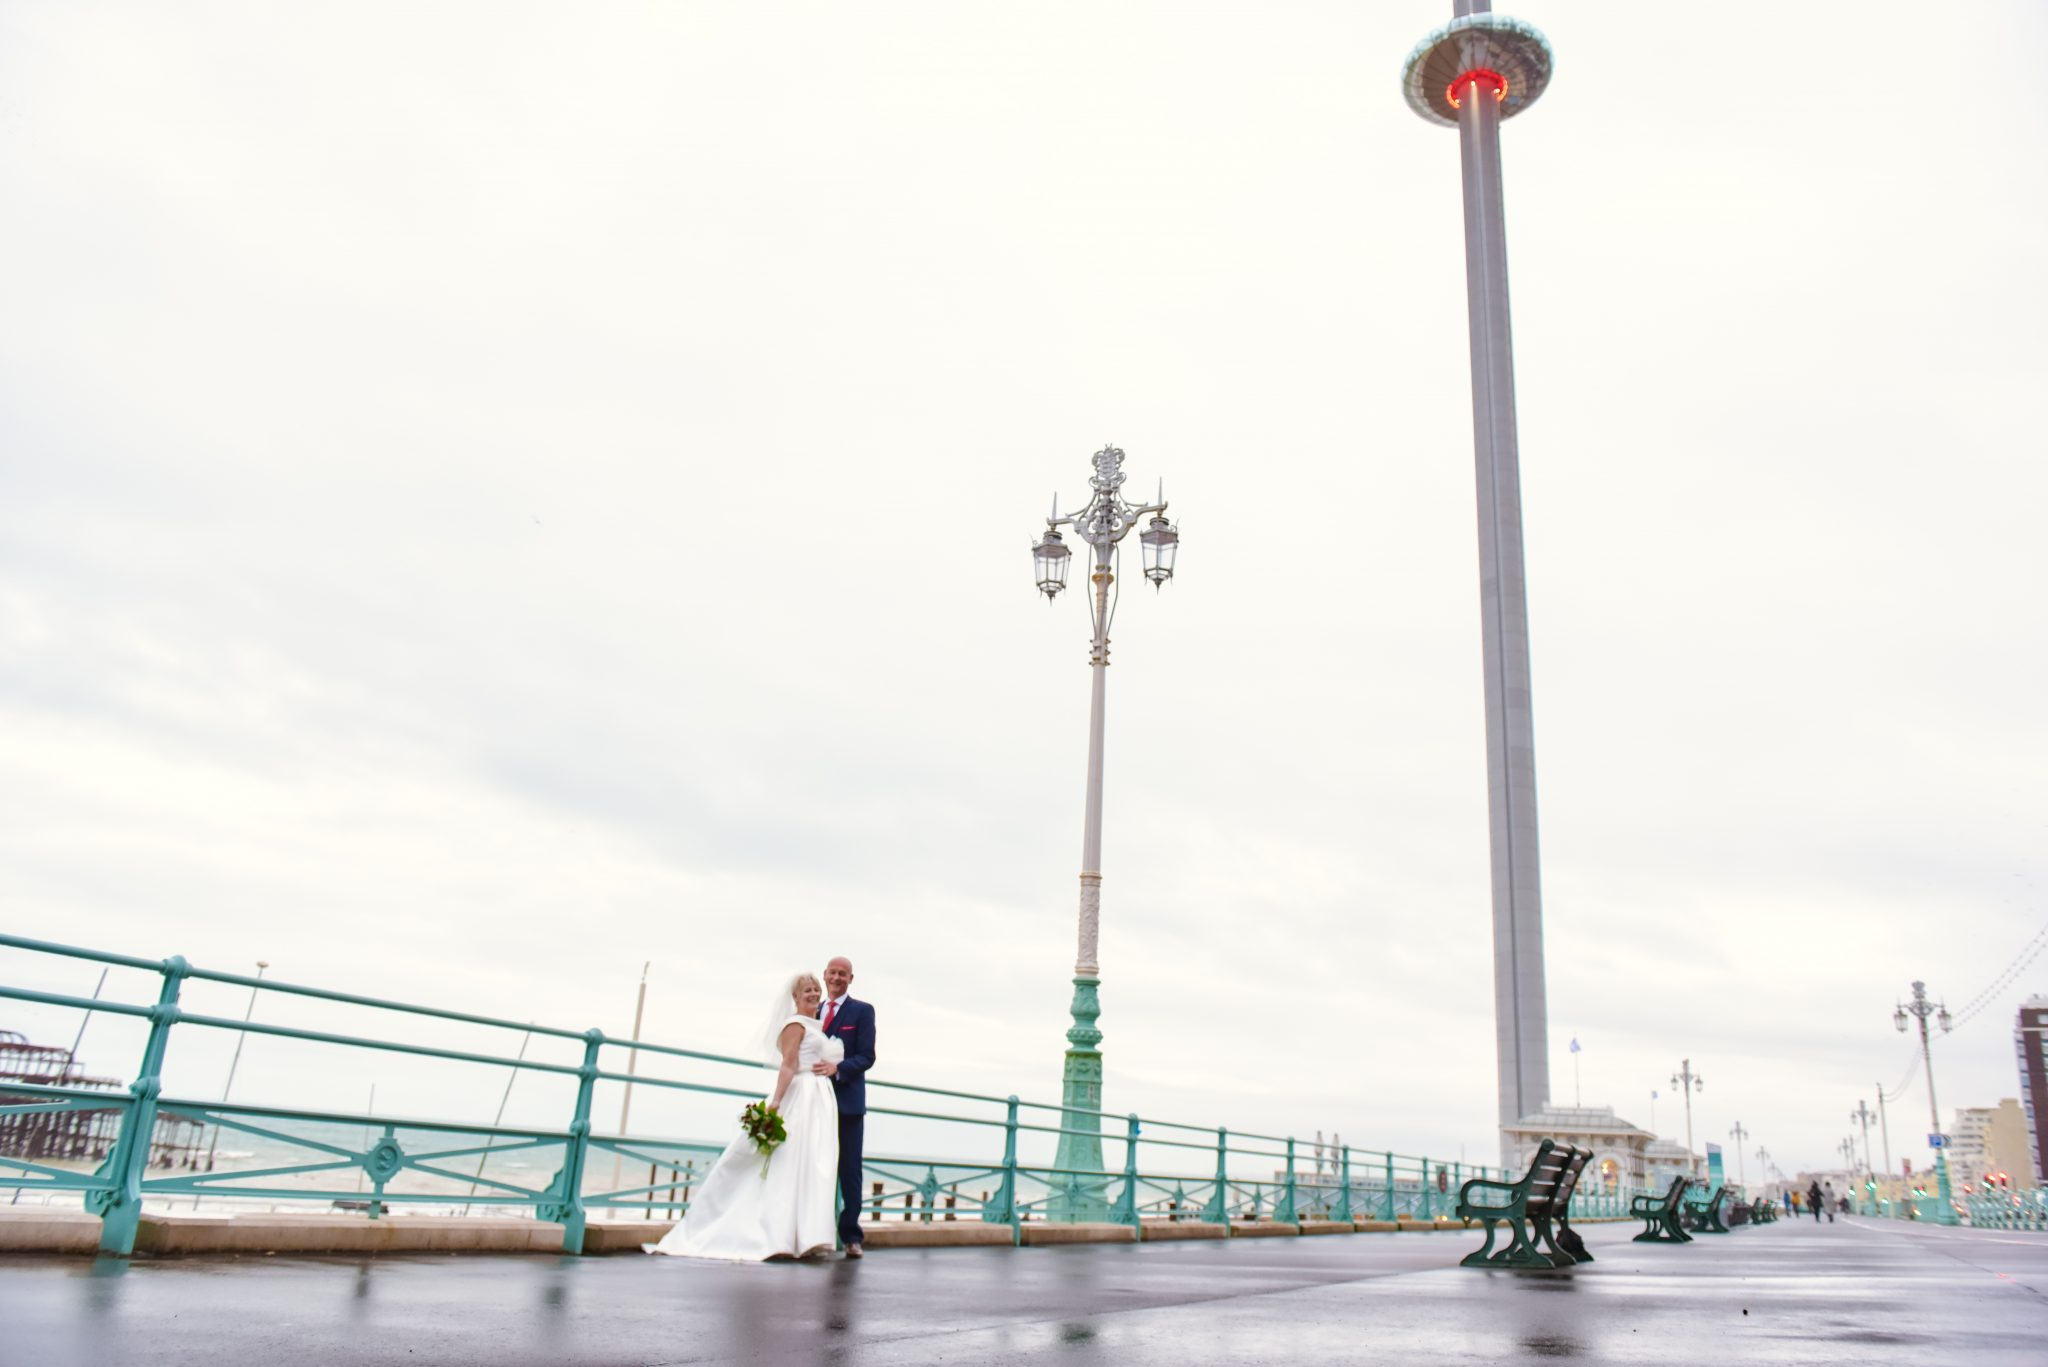 wedding photography in brighton with west pier and bride and groom